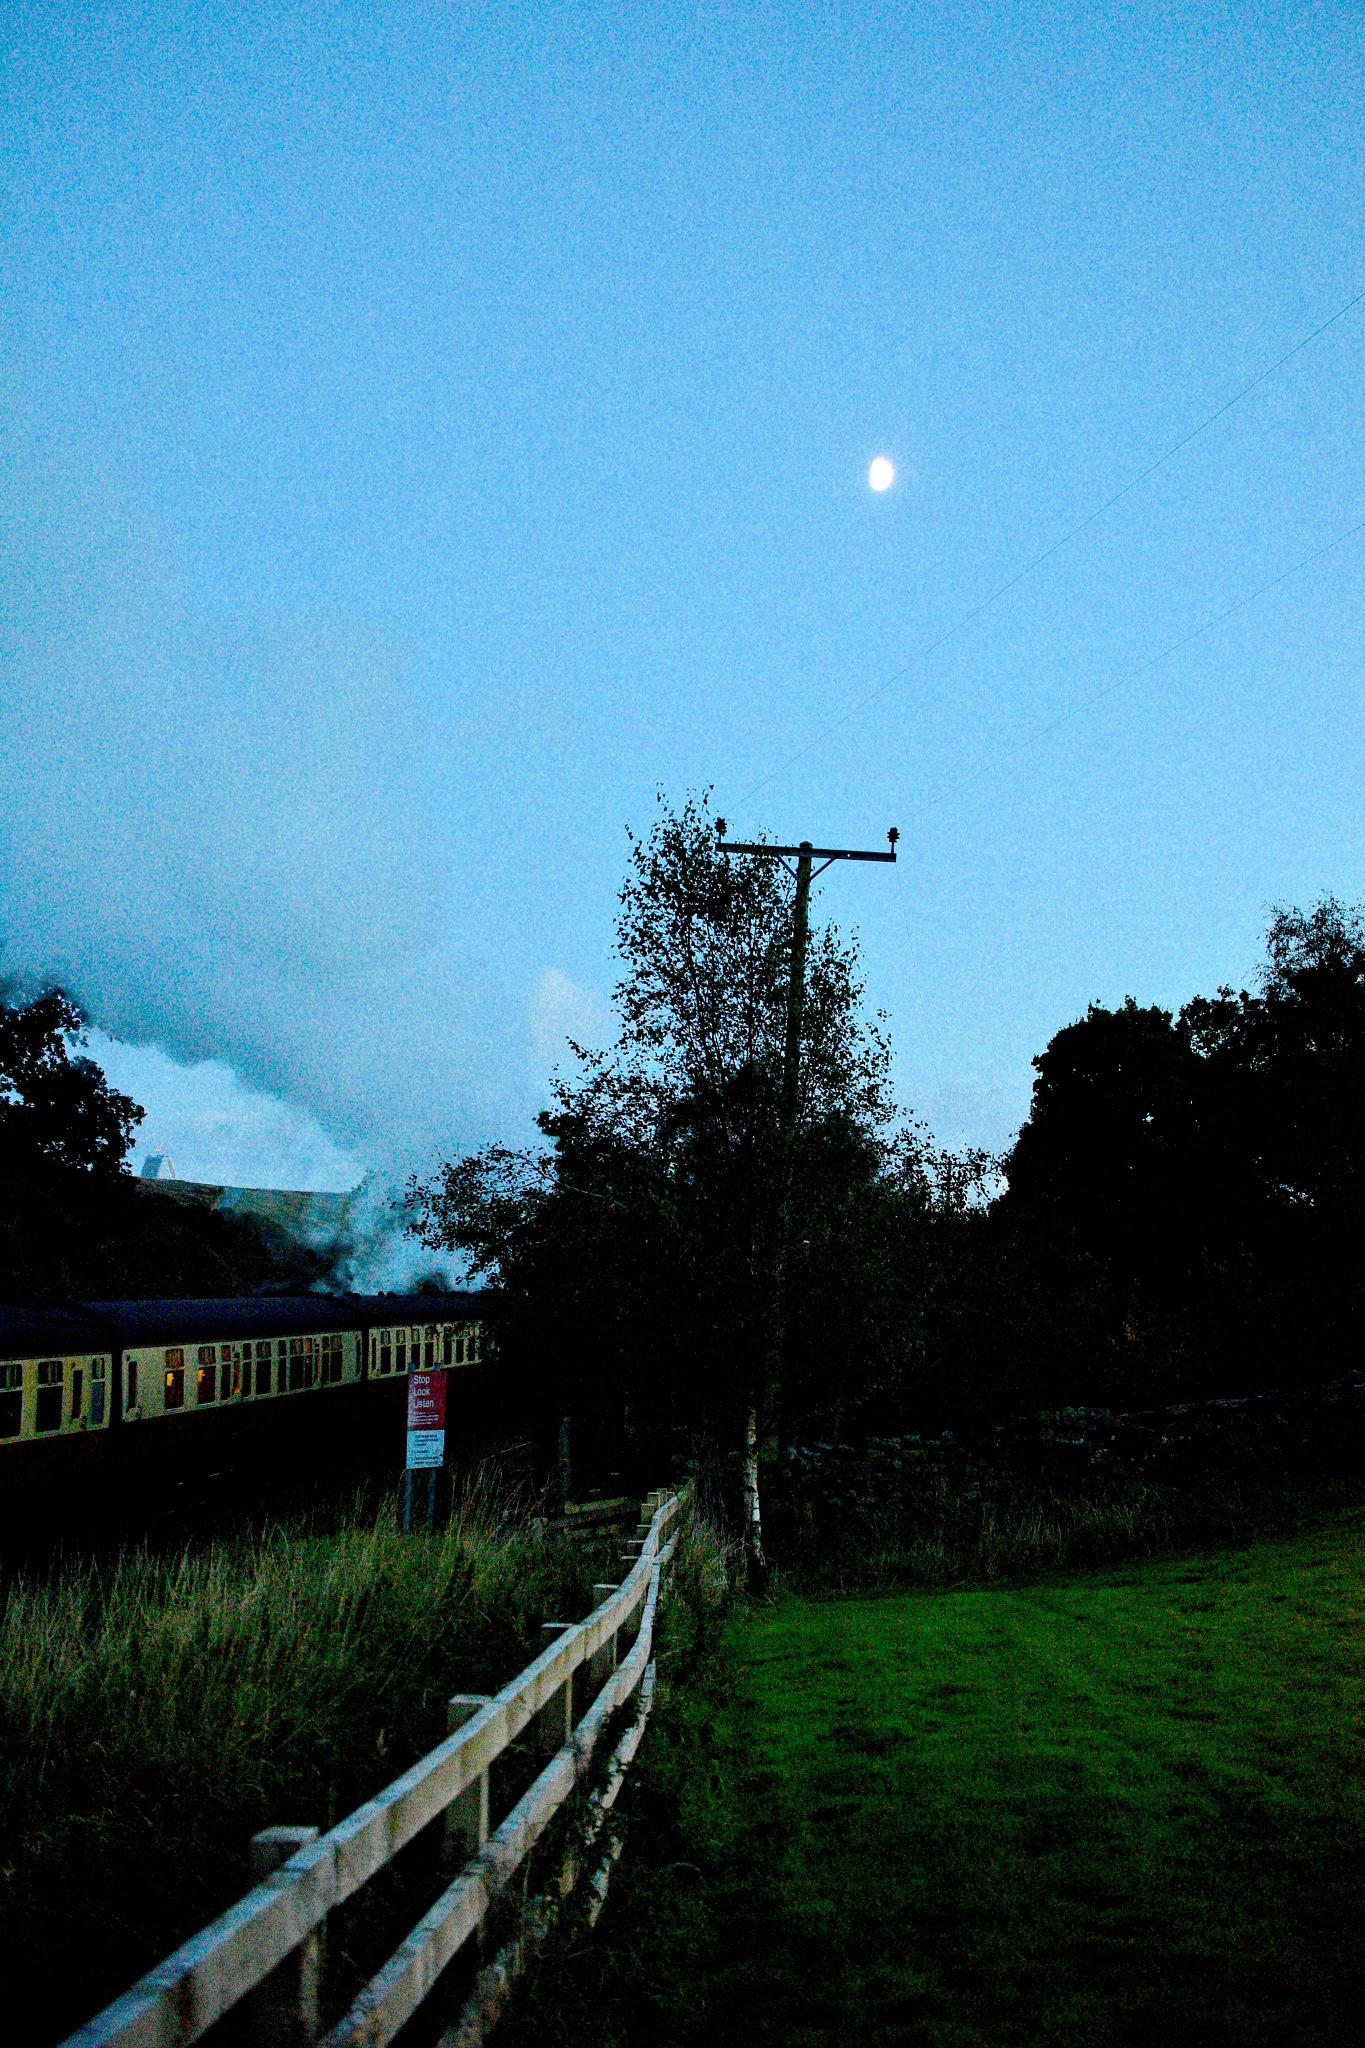 Last Steam Train of the Day. Yorkshire. by John Cater